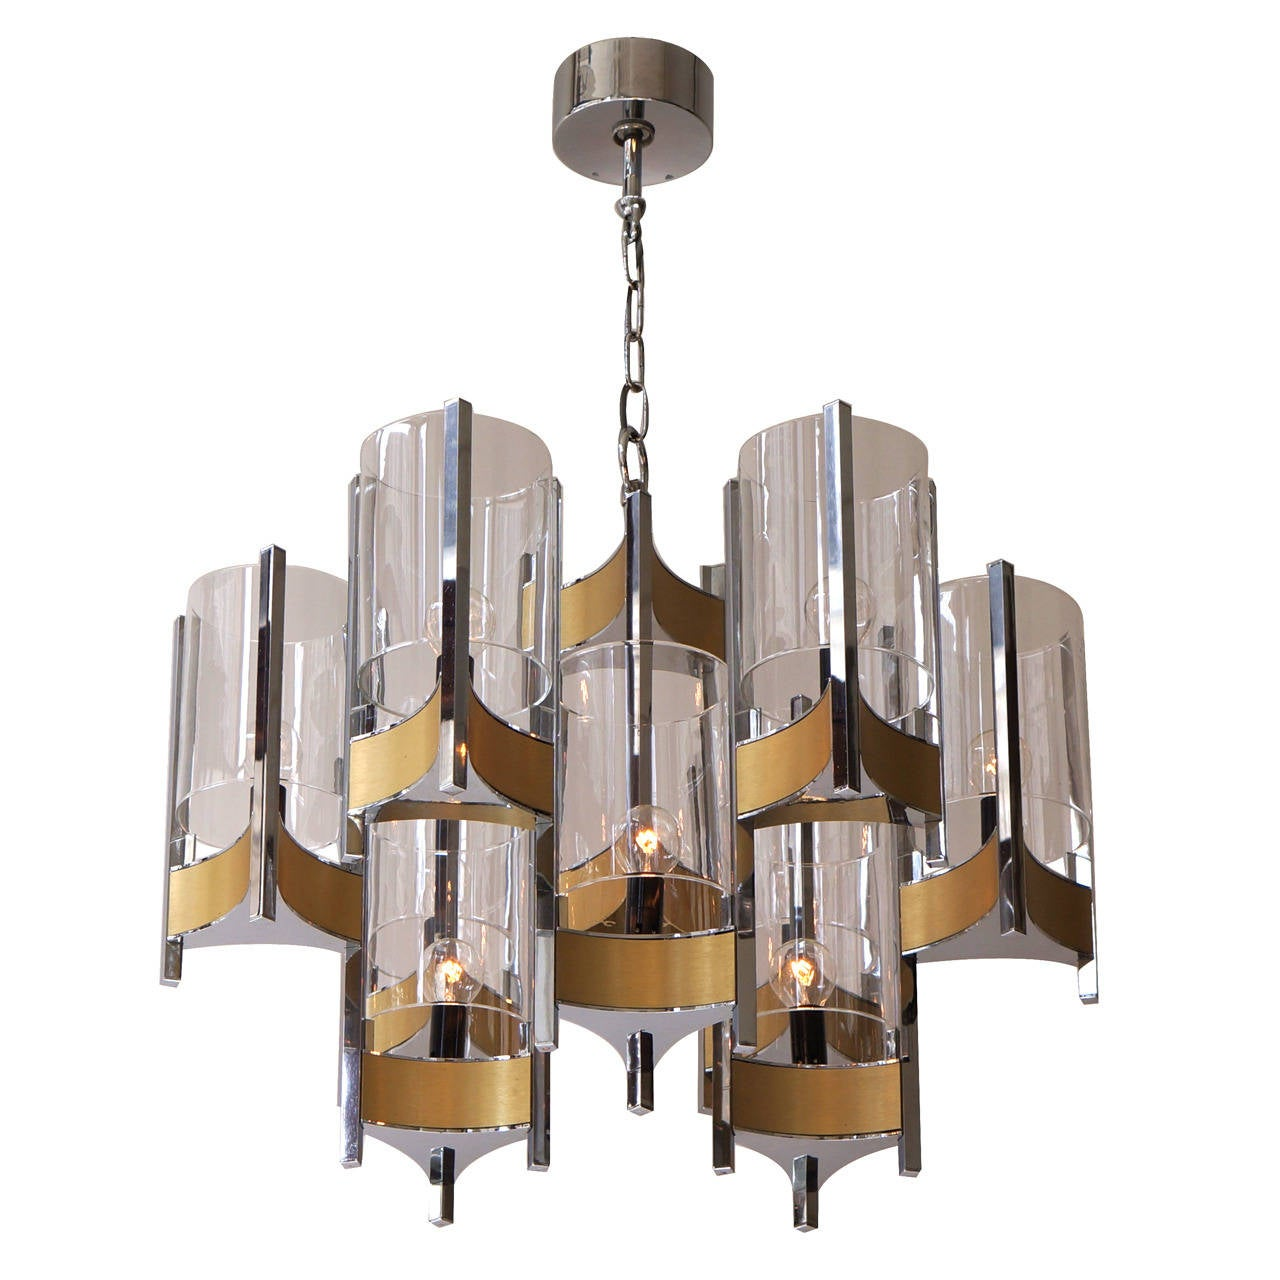 Set of Four Sculptural Sciolari Chandeliers